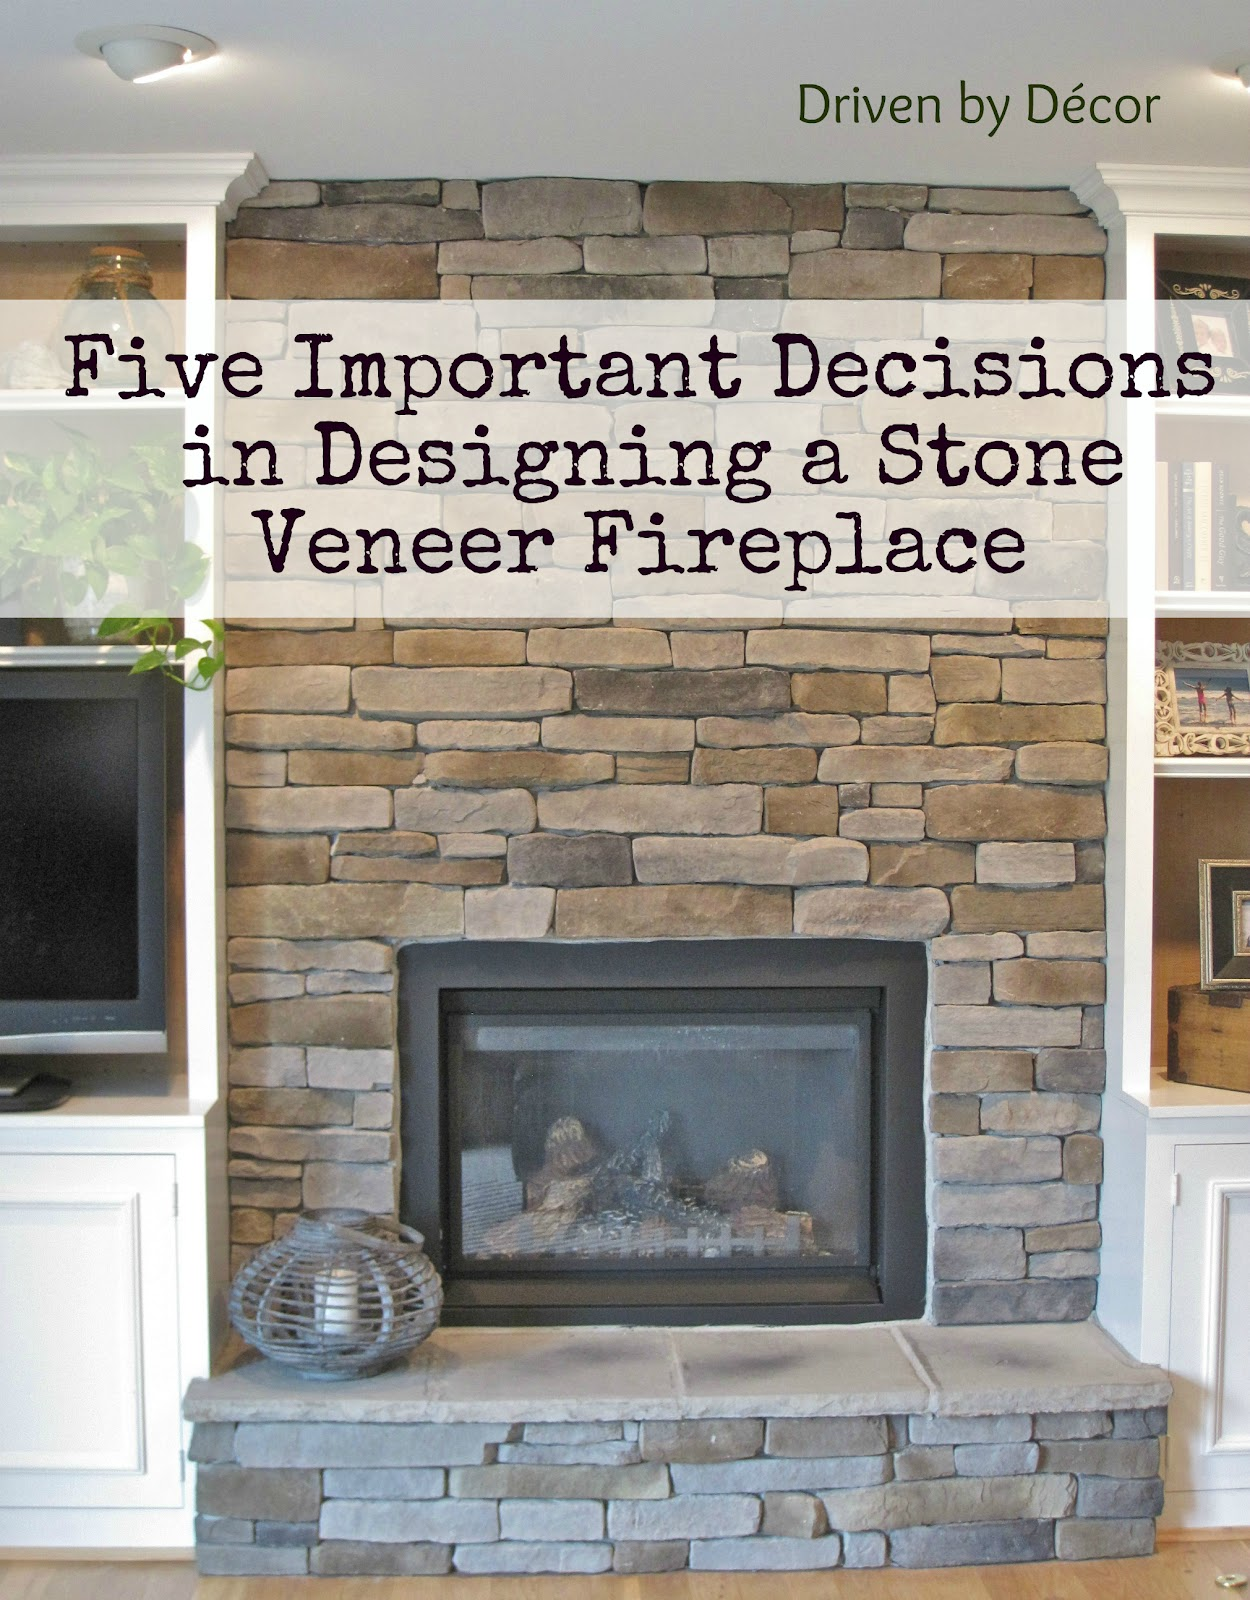 Five Important Decisions In Designing A Stone Veneer Fireplace Driven By Decor